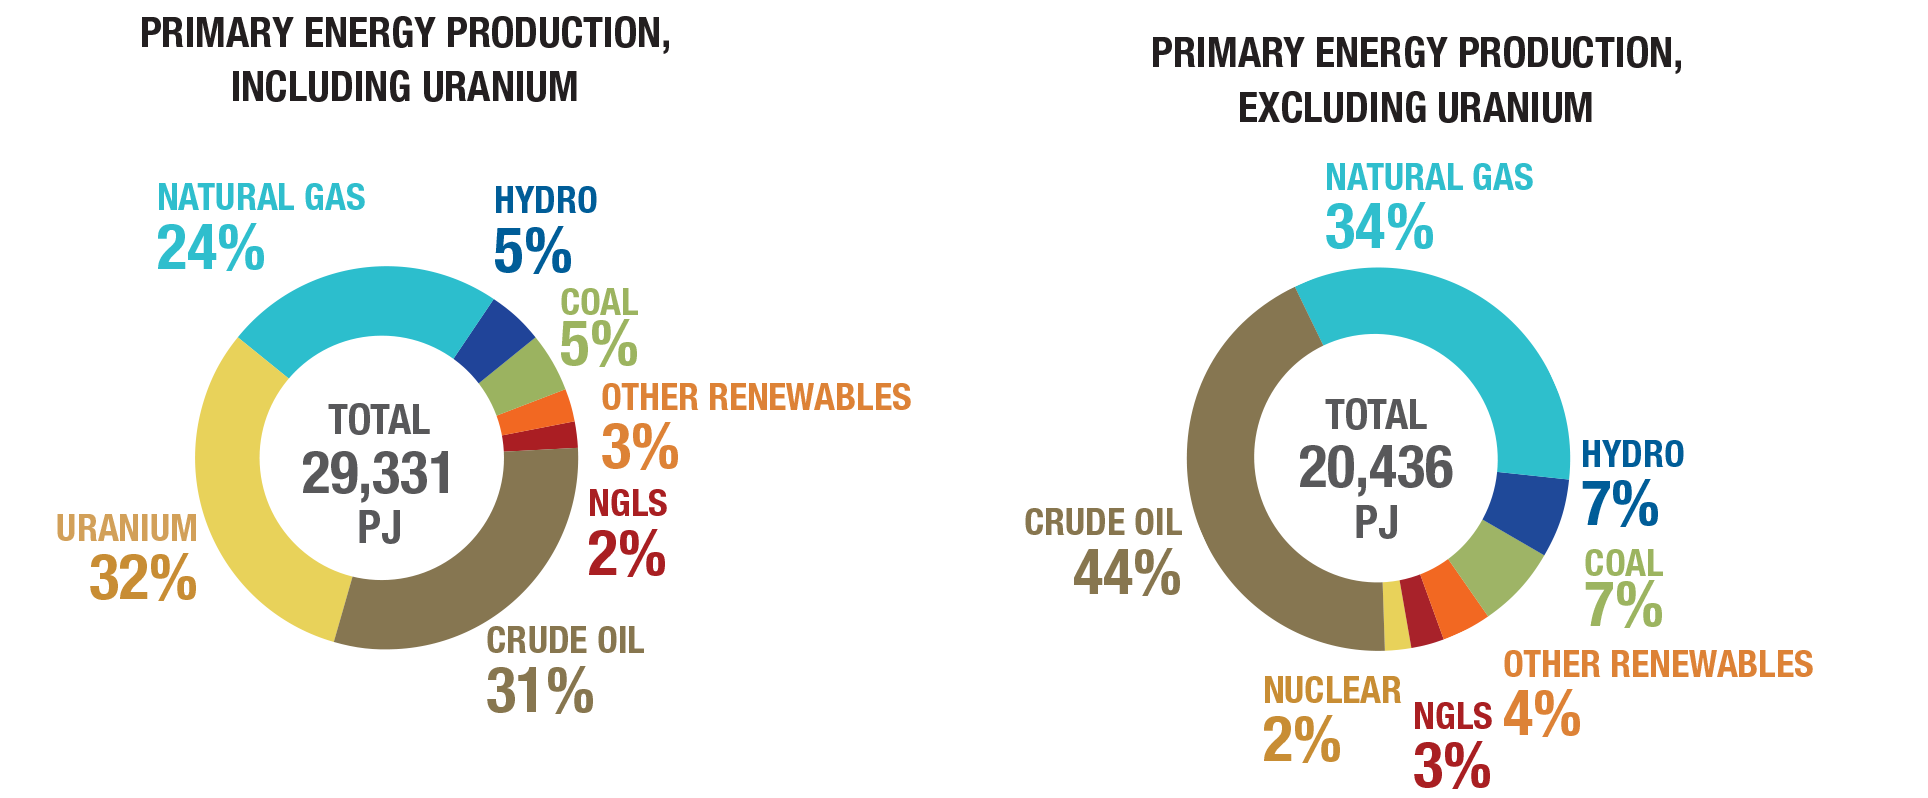 Primary energy production by source